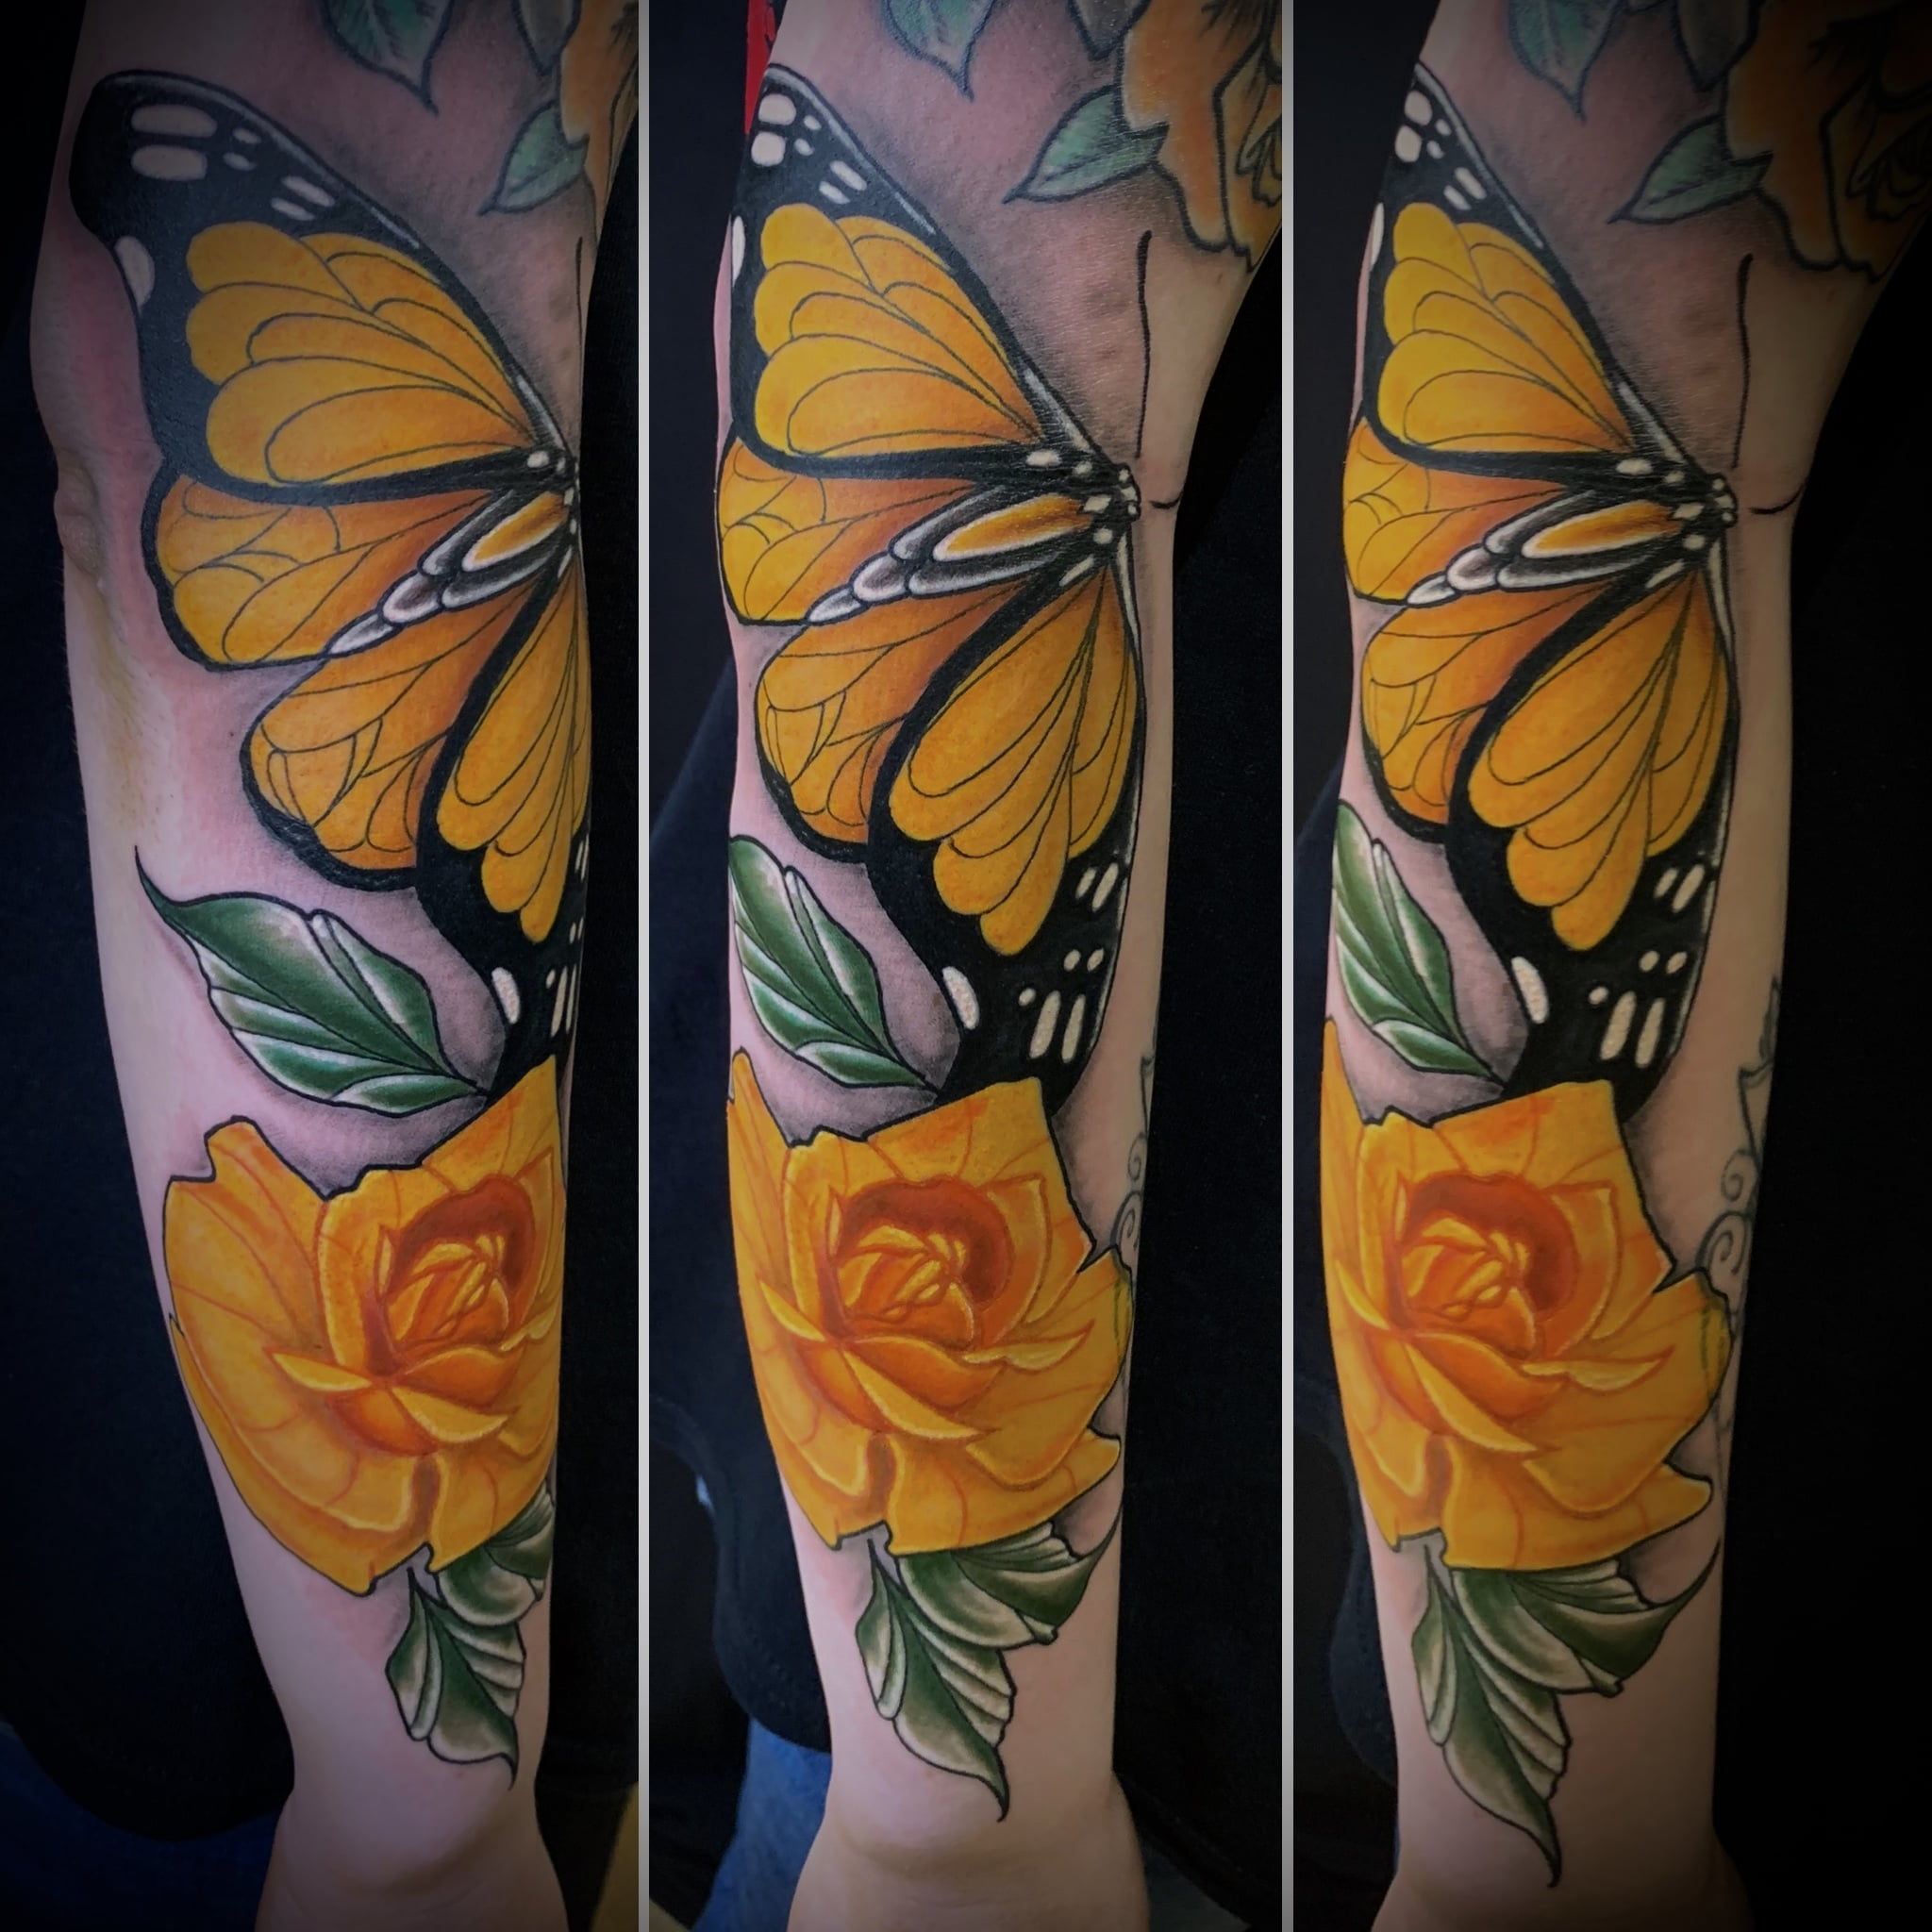 Tattoo Anansi München Artist David neotraditional color butterfly Schmetterling rose sleeve